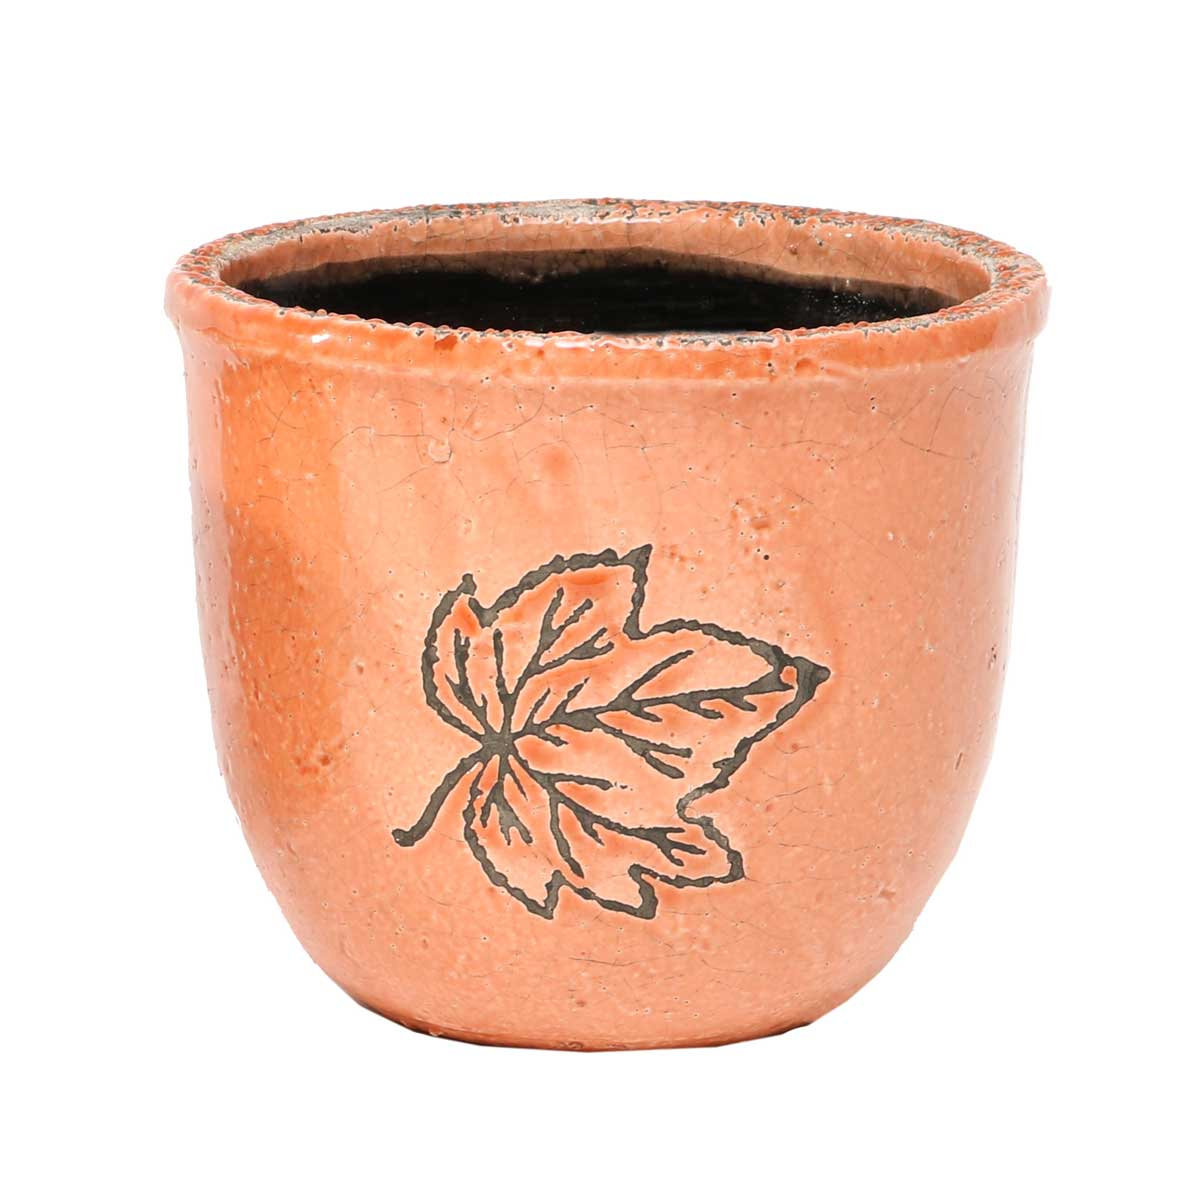 "Leaf Cache Pot Clay 5.5""x6"" A2069 CL v22"